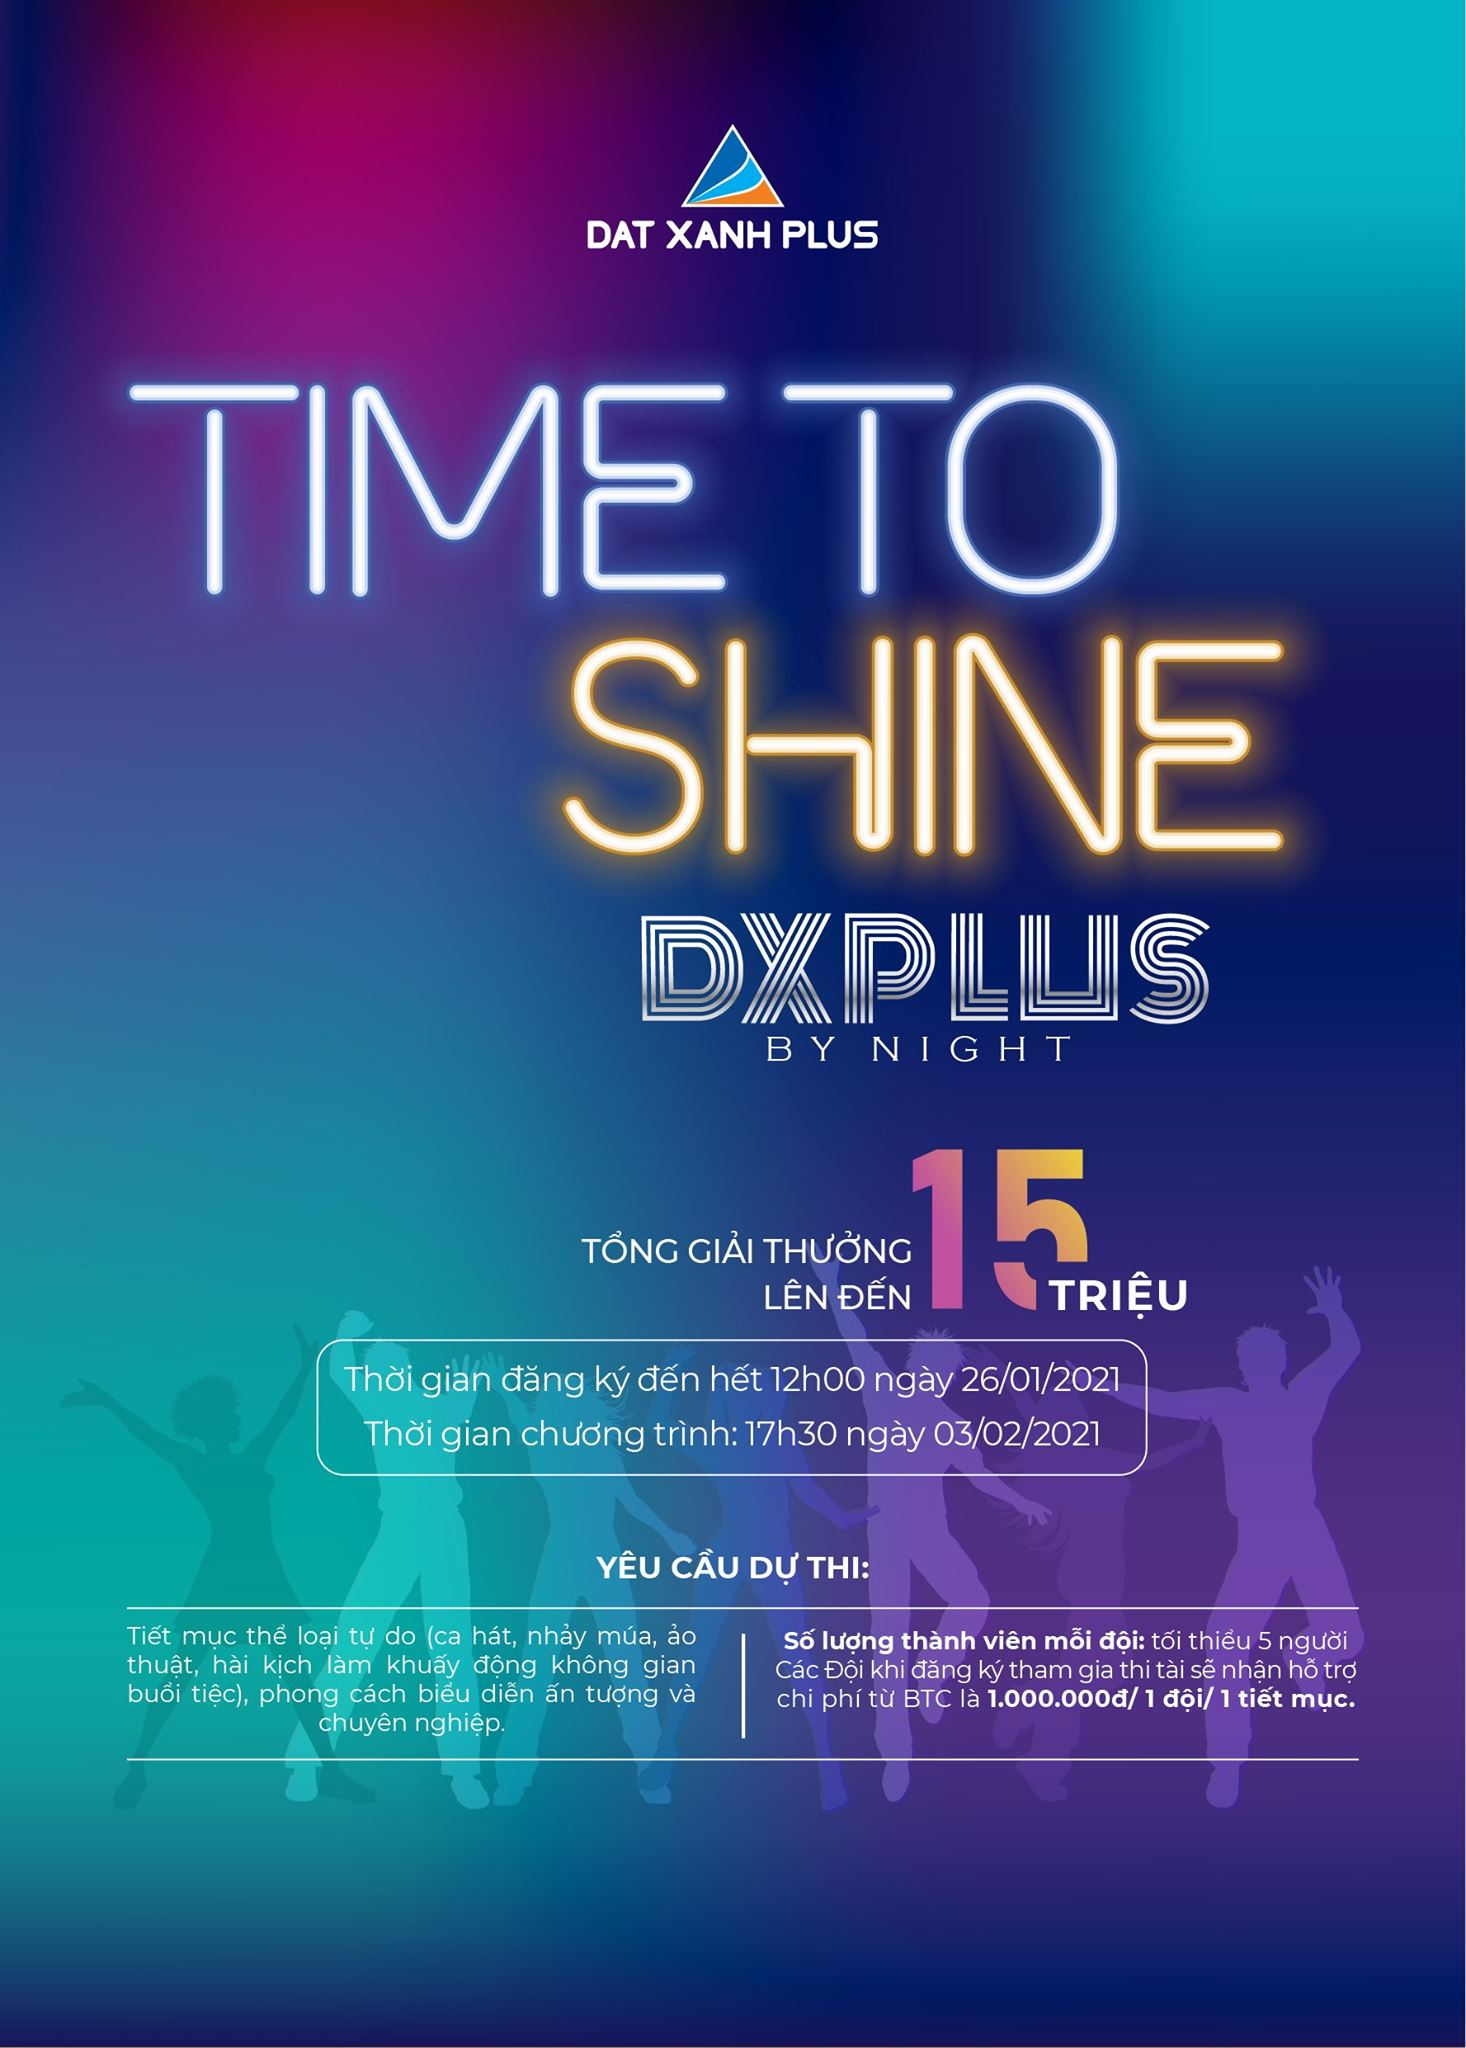 dem-dxpl-by-ni ght-time-to-sh ine-1.jpg